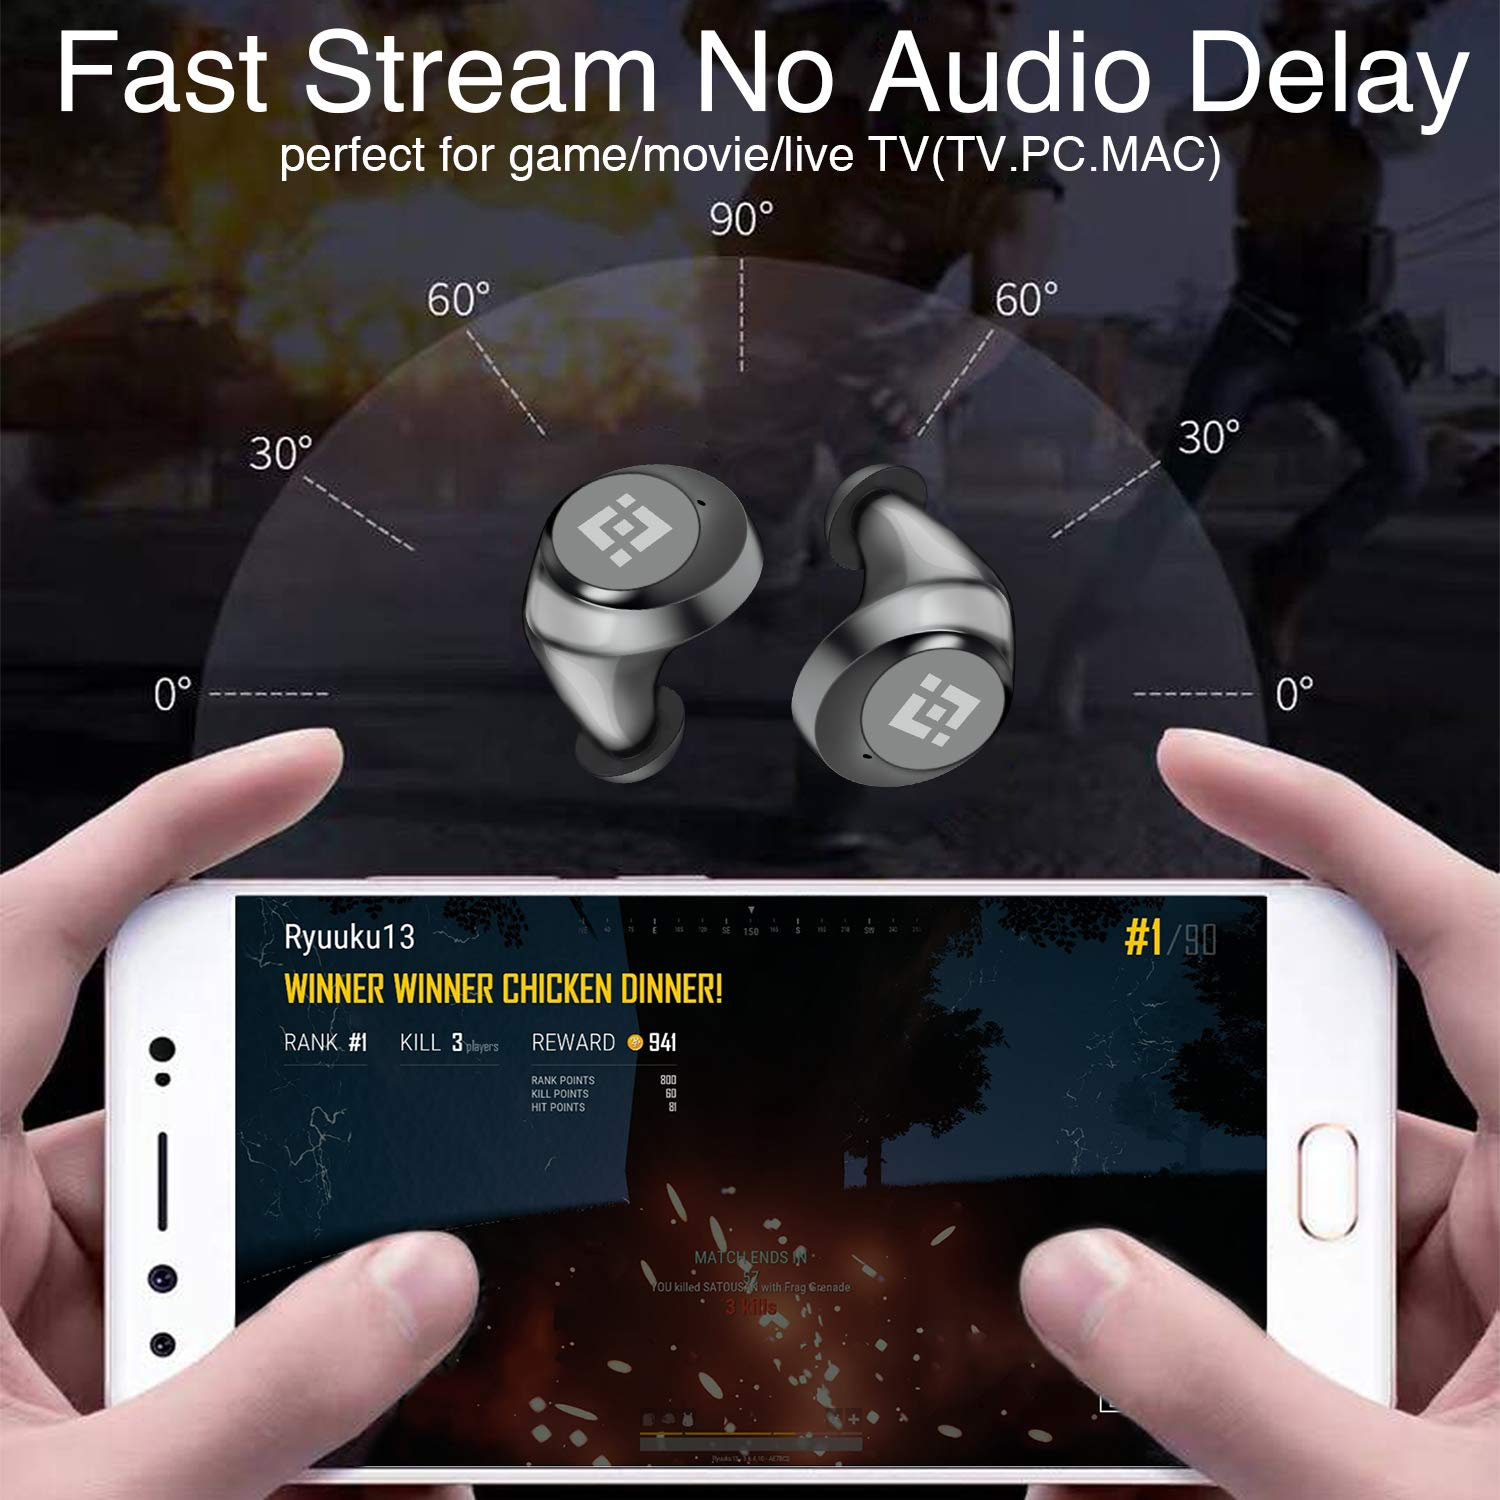 Wireless Earbuds 【Upgraded Graphene 3D Stereo Sound】 Bluetooth 5.0 with 28Hr Play Time Noise Cancelling HonShoop Lightweight Bluetooth Headphones Built-in Mic (Black) (Matte Black) by HonShoop (Image #4)